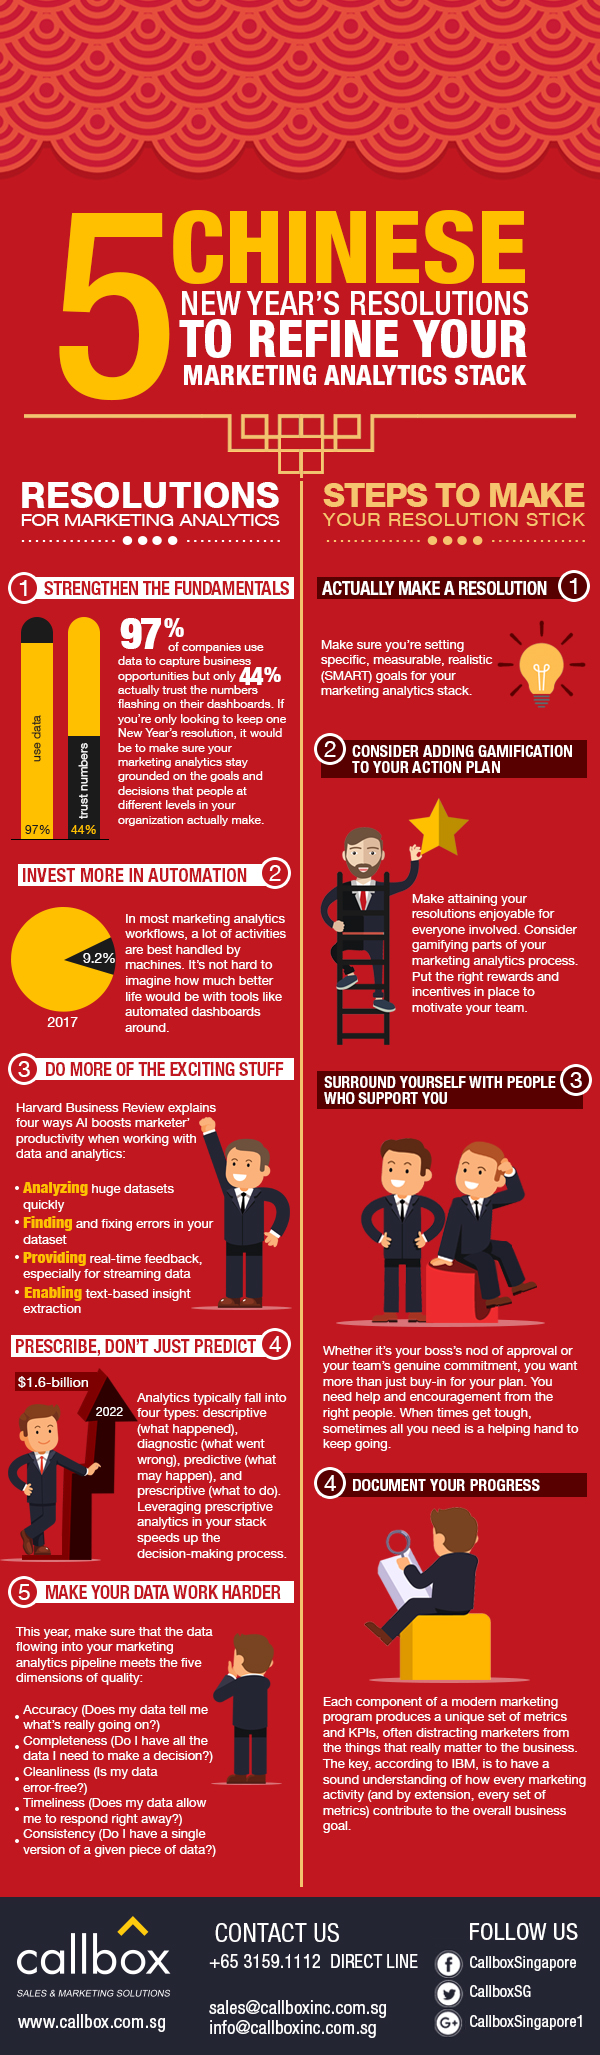 5 Chinese New Year's Resolutions to Refine Your Marketing Analytics Stack [INFOGRAPHIC]